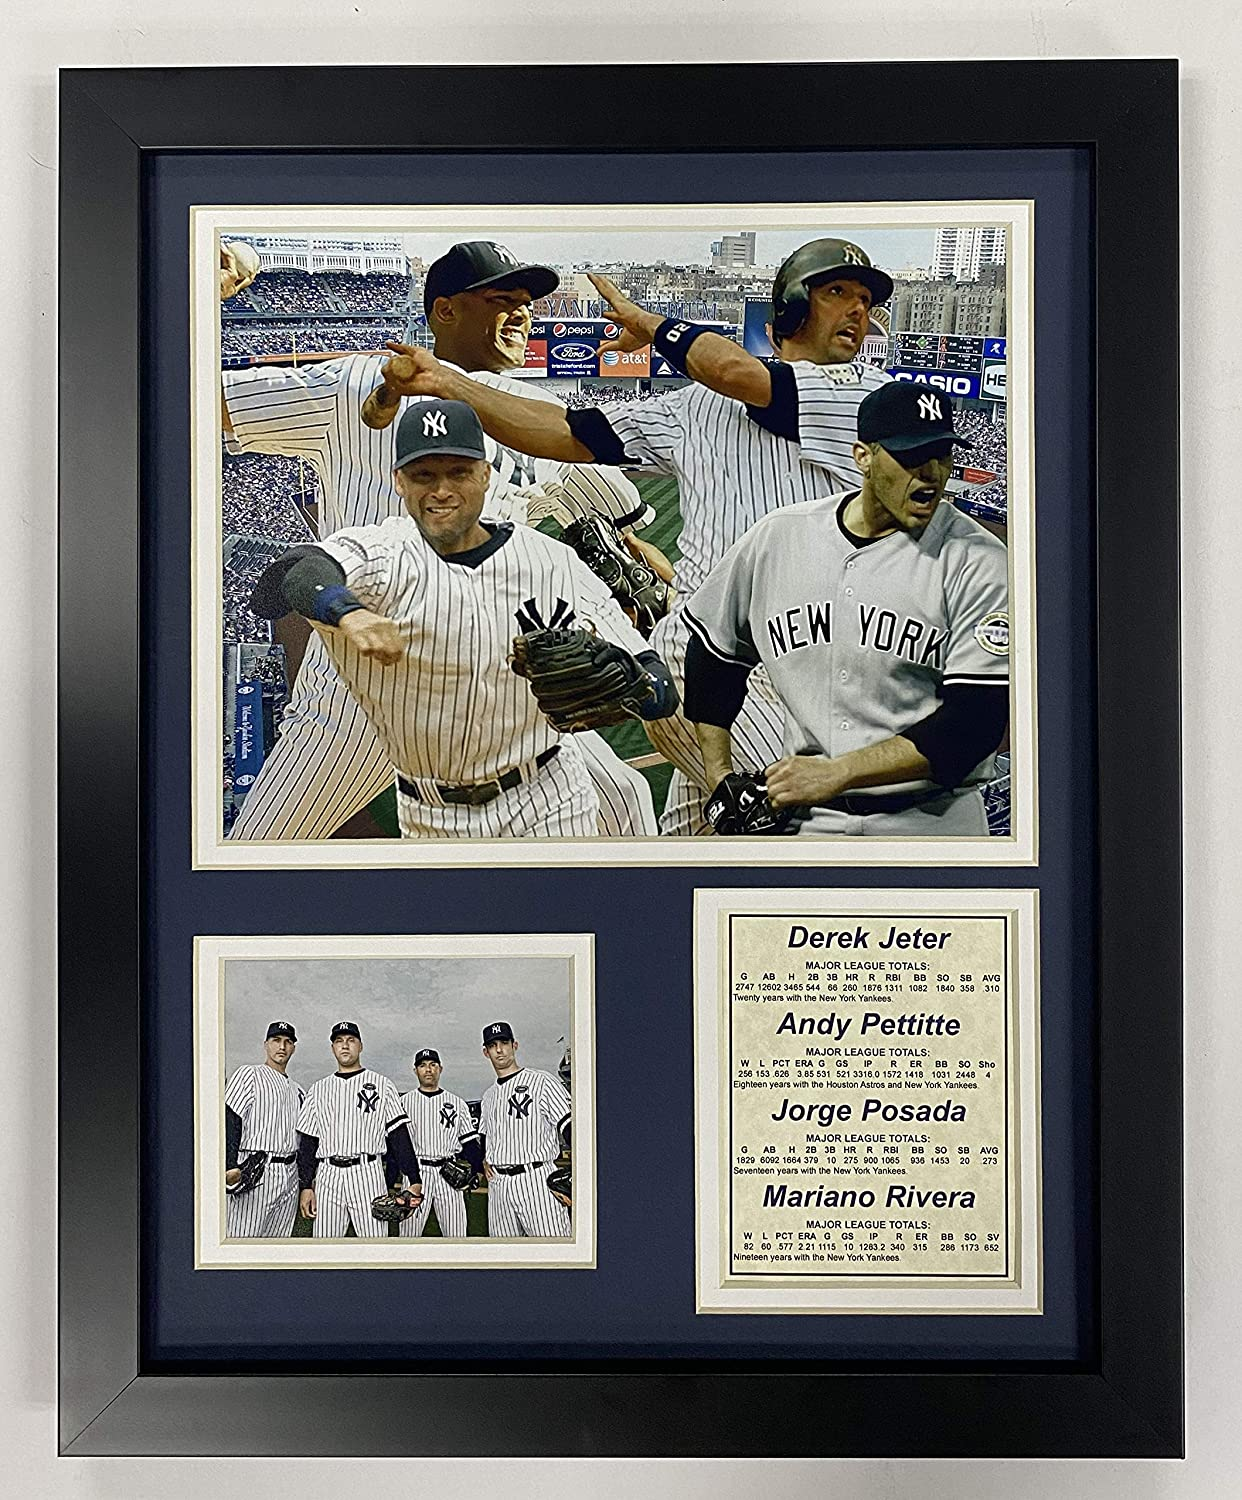 "Legends Never Die New York Yankees 2009 Baseball World Series Core 4 Collectible | Framed Photo Collage Wall Art Decor - 12""x15"""